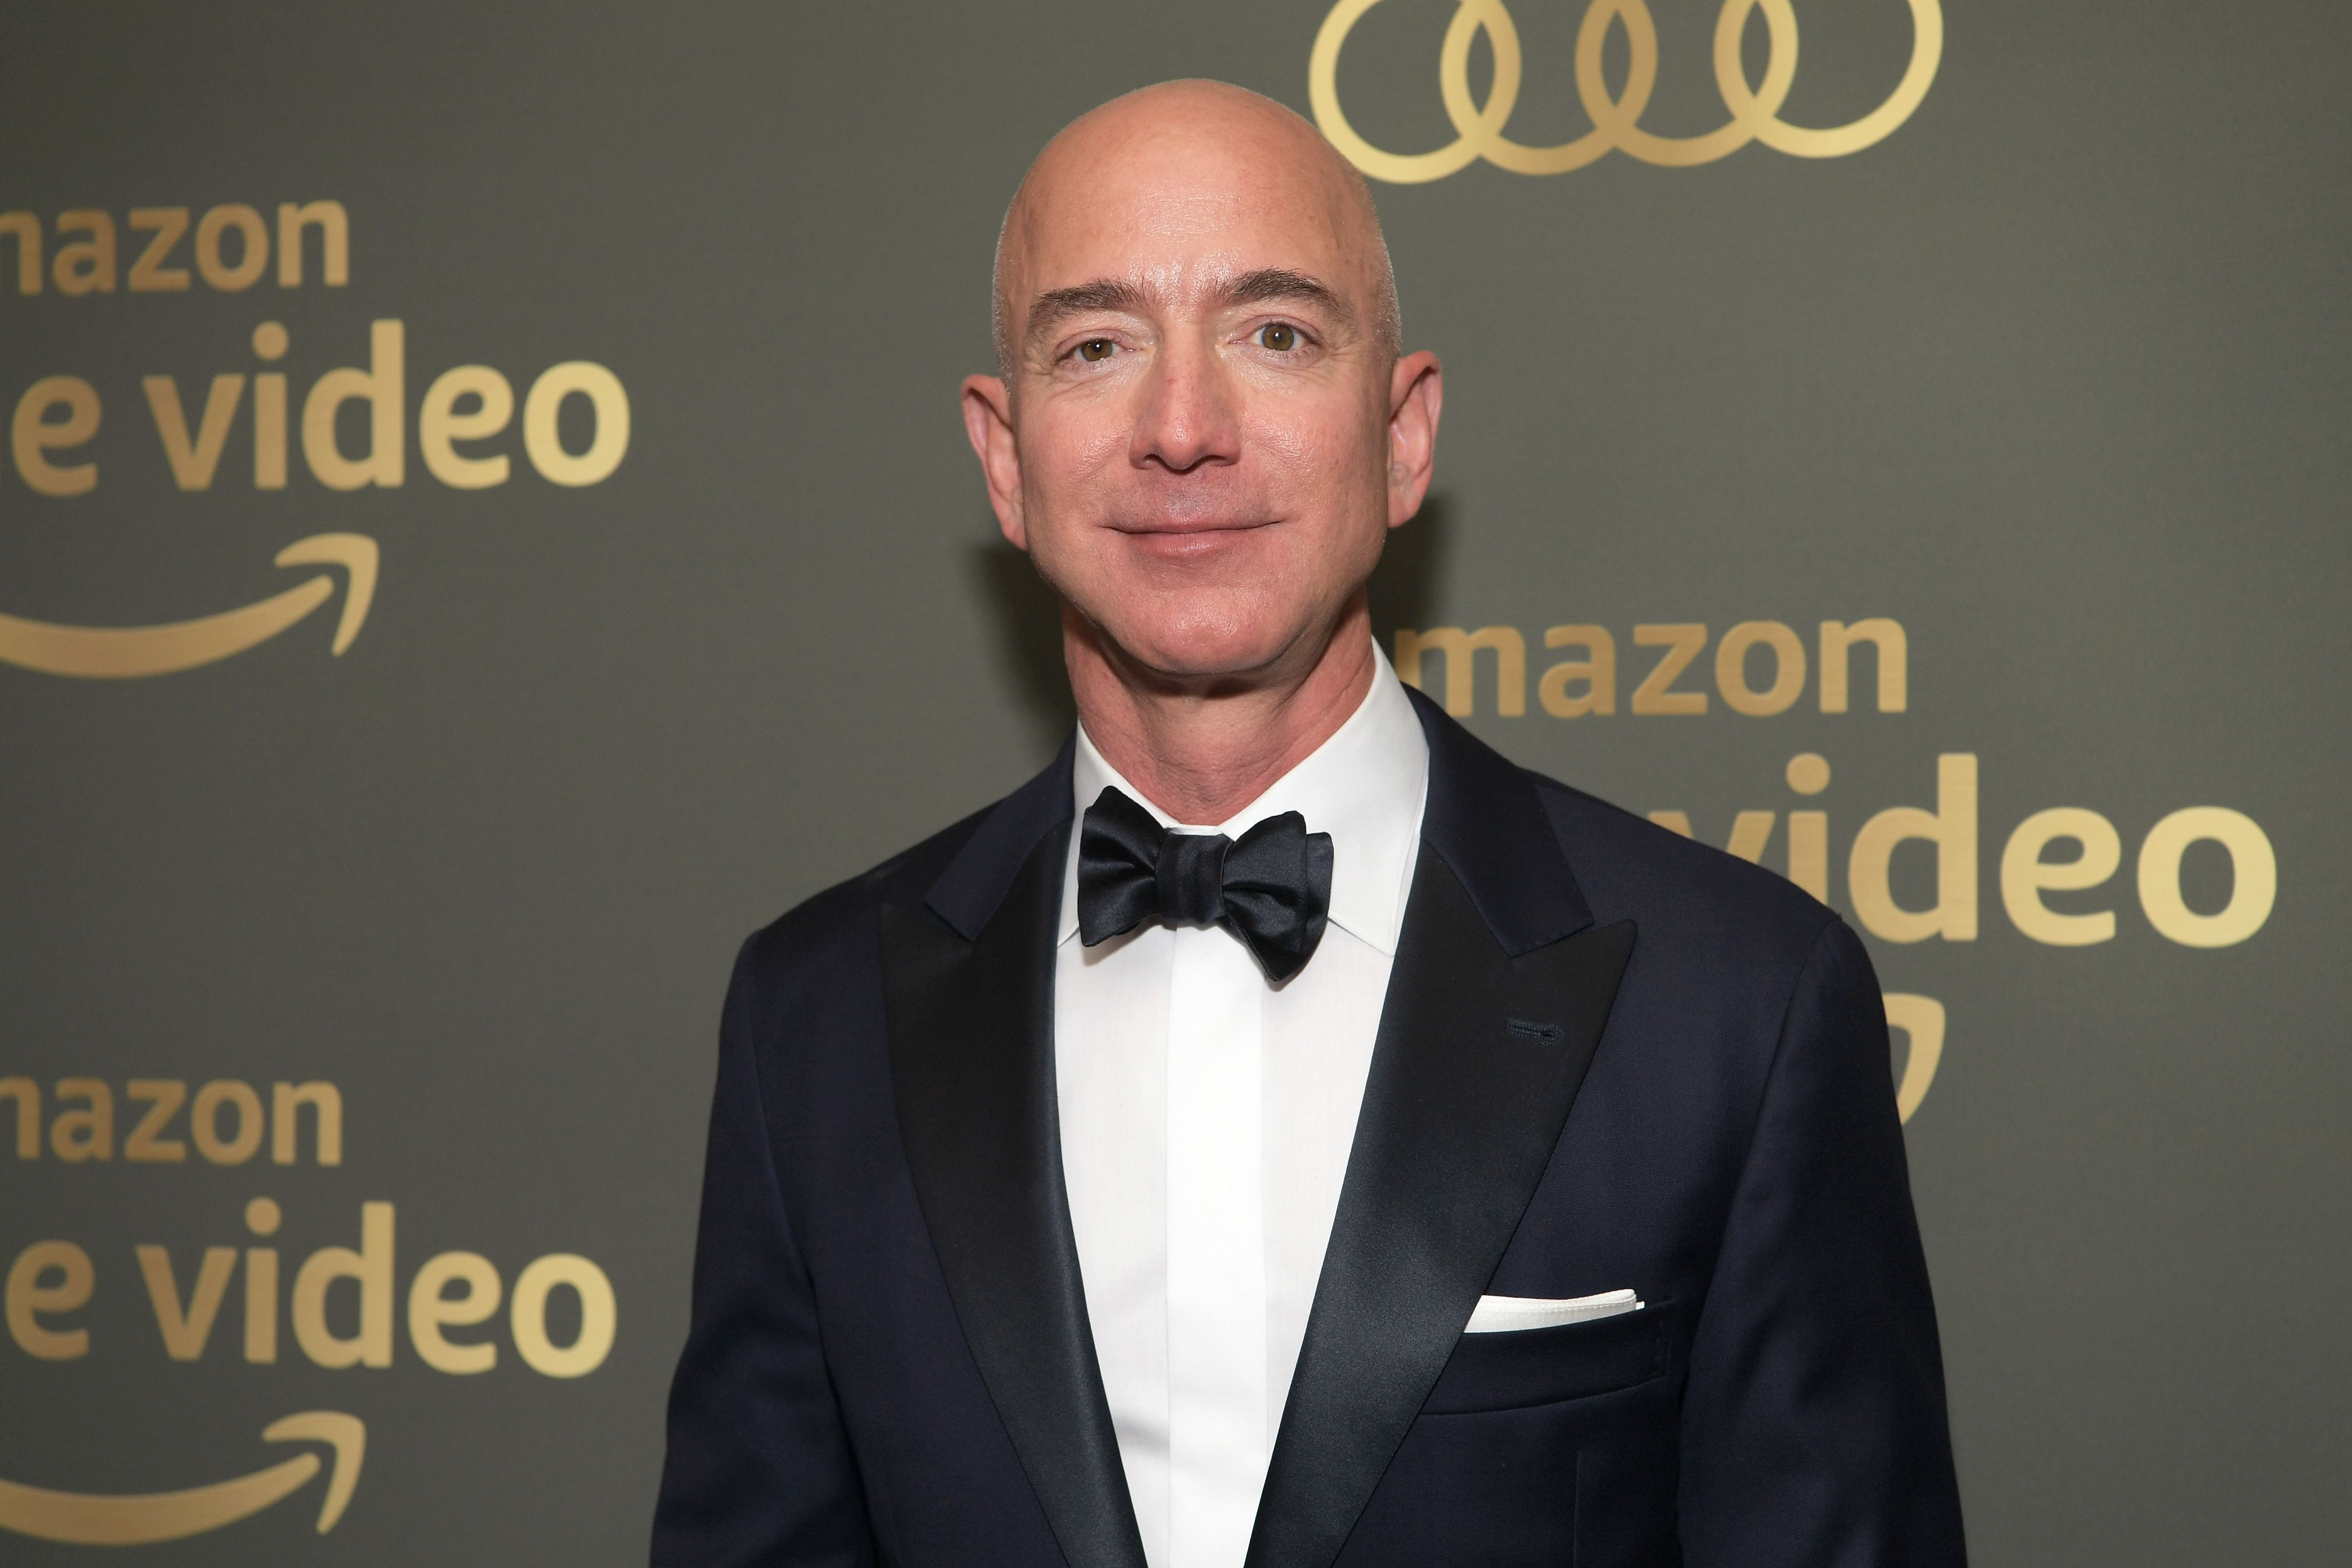 Amazon CEO Jeff Bezos attends the Amazon Prime Video's Golden Globe Awards After Party in Beverly Hills, Calif., on Jan. 6, 2019.